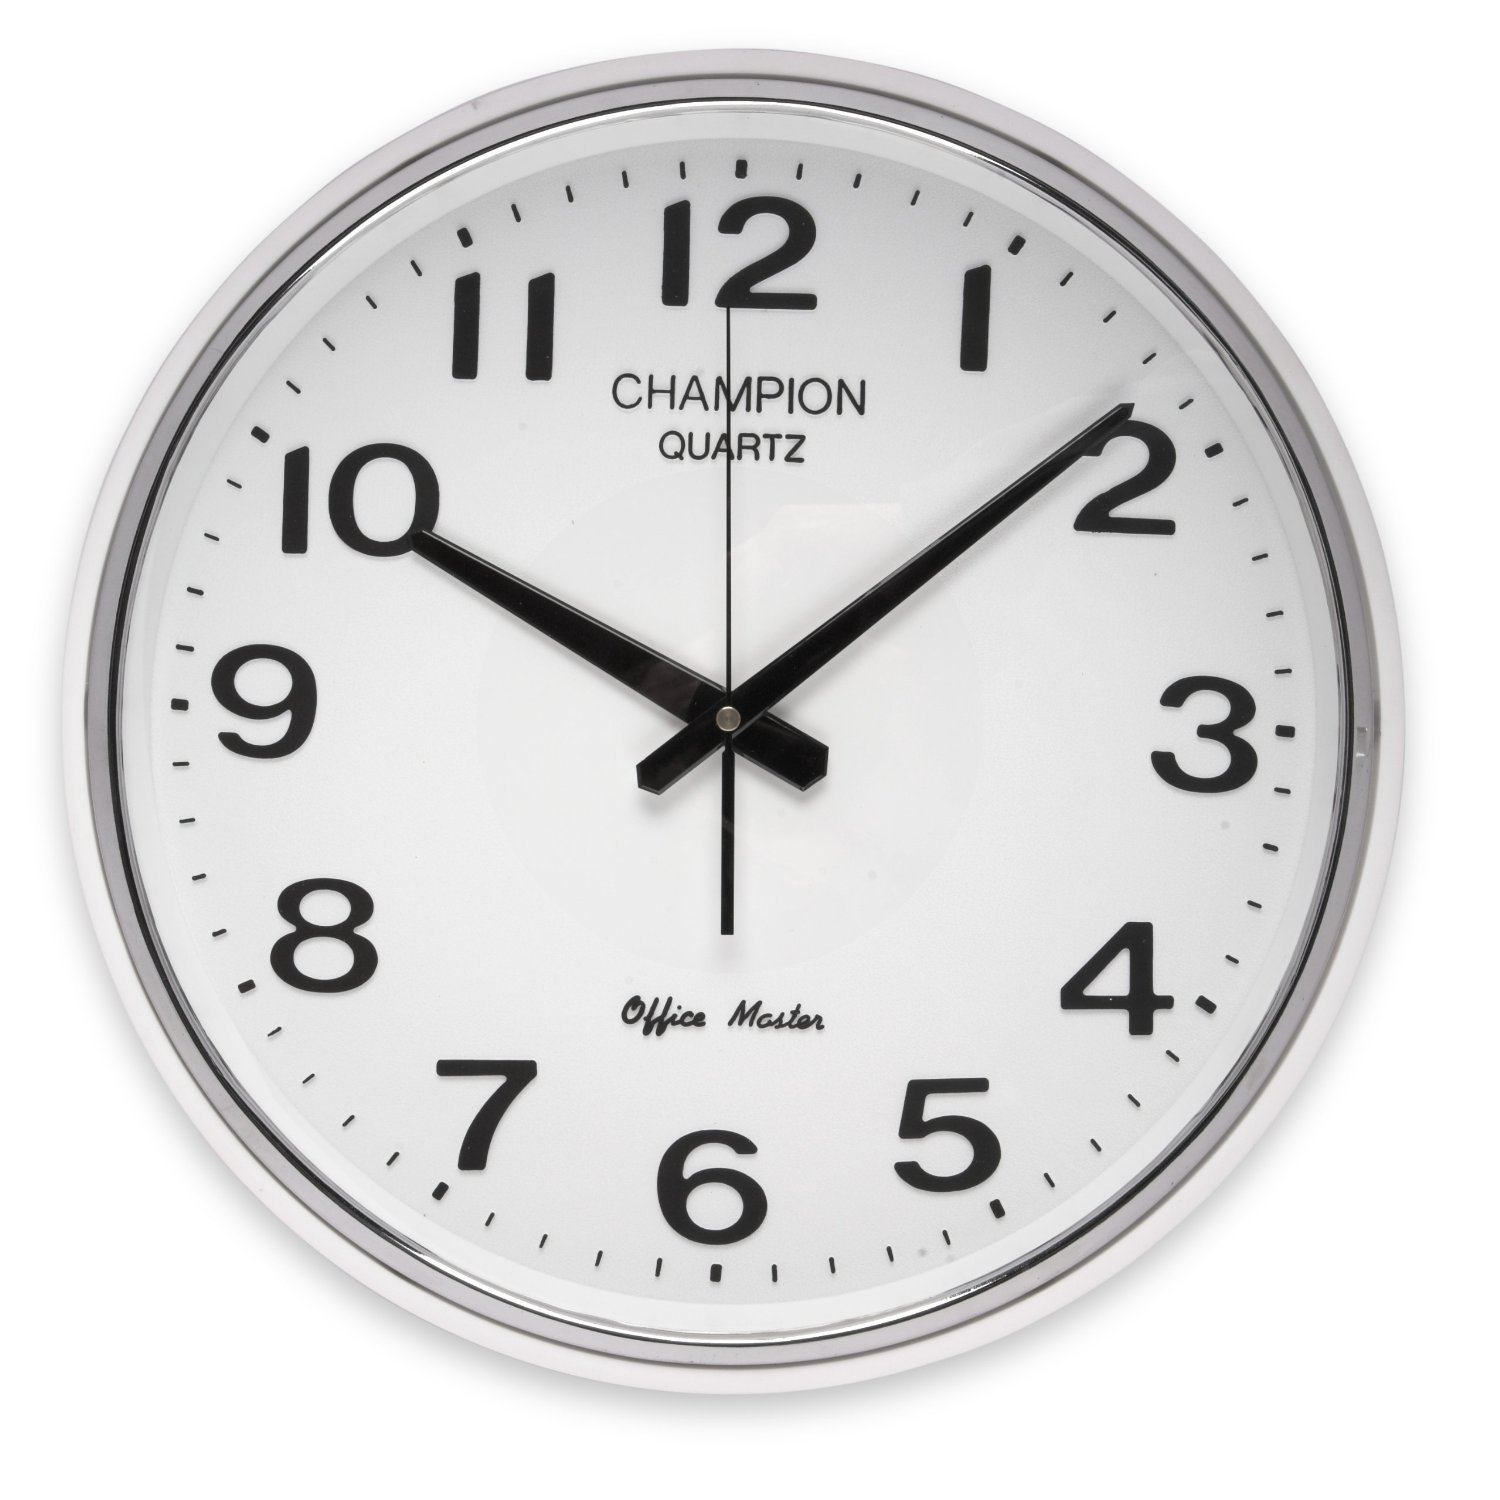 wall clocks for office. Very Large 15 Inch (380mm) Bold Quality Heavy Construction Office Wall Clock: Amazon.co.uk: Products Clocks For